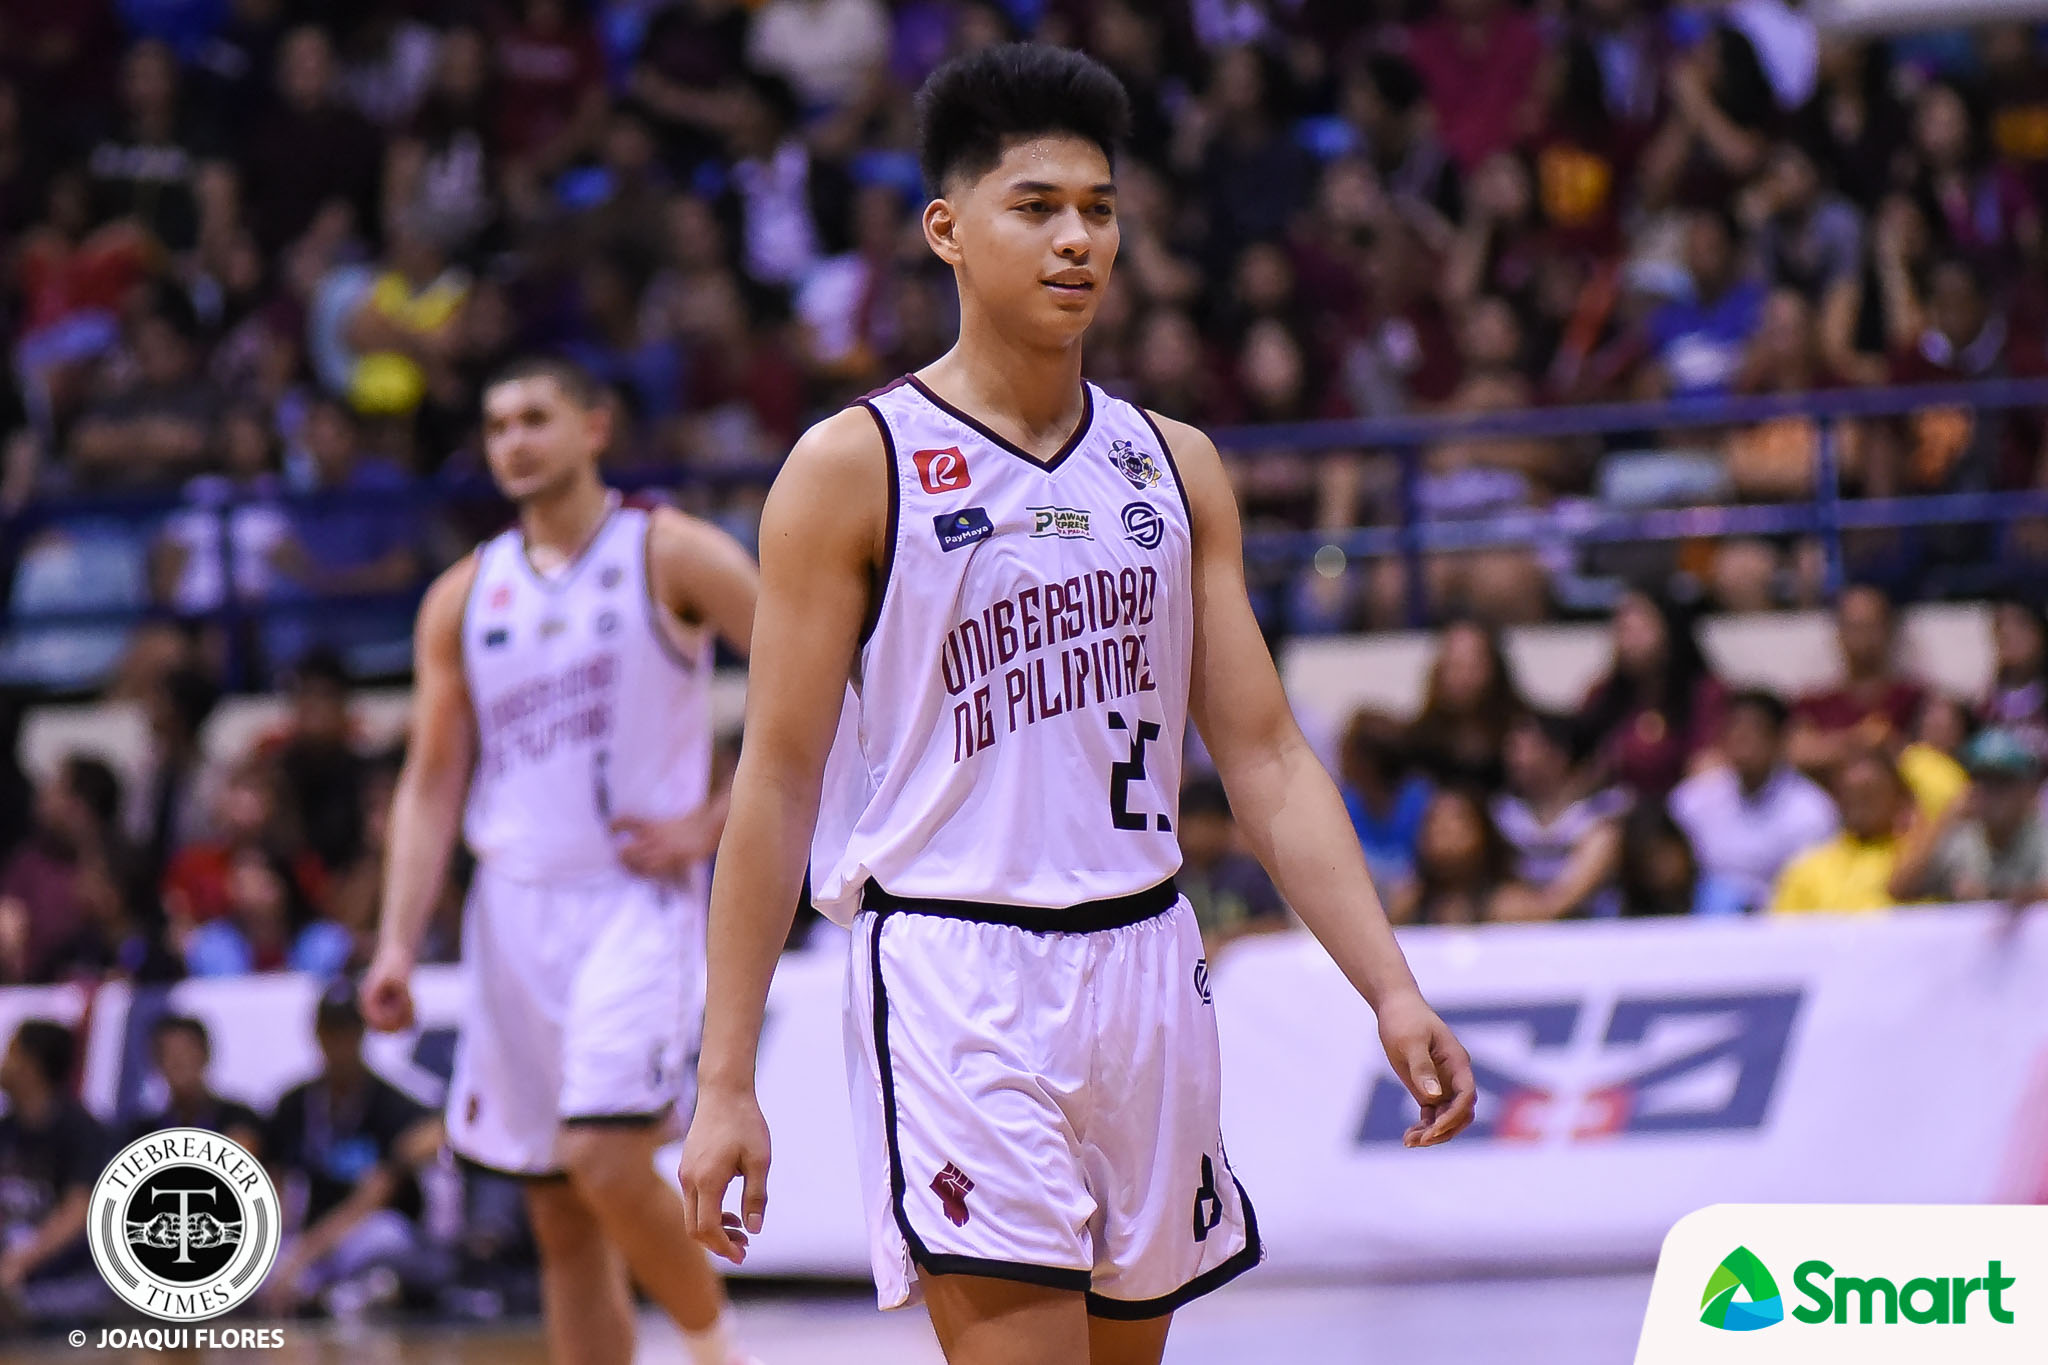 Tiebreaker Times Ricci Rivero not motivated by vengeance vs La Salle: 'Just about the second seed' Basketball News UAAP UP  UAAP Season 82 Men's Basketball UAAP Season 82 Ricci Rivero DLSU Men's Basketball Bo Perasol